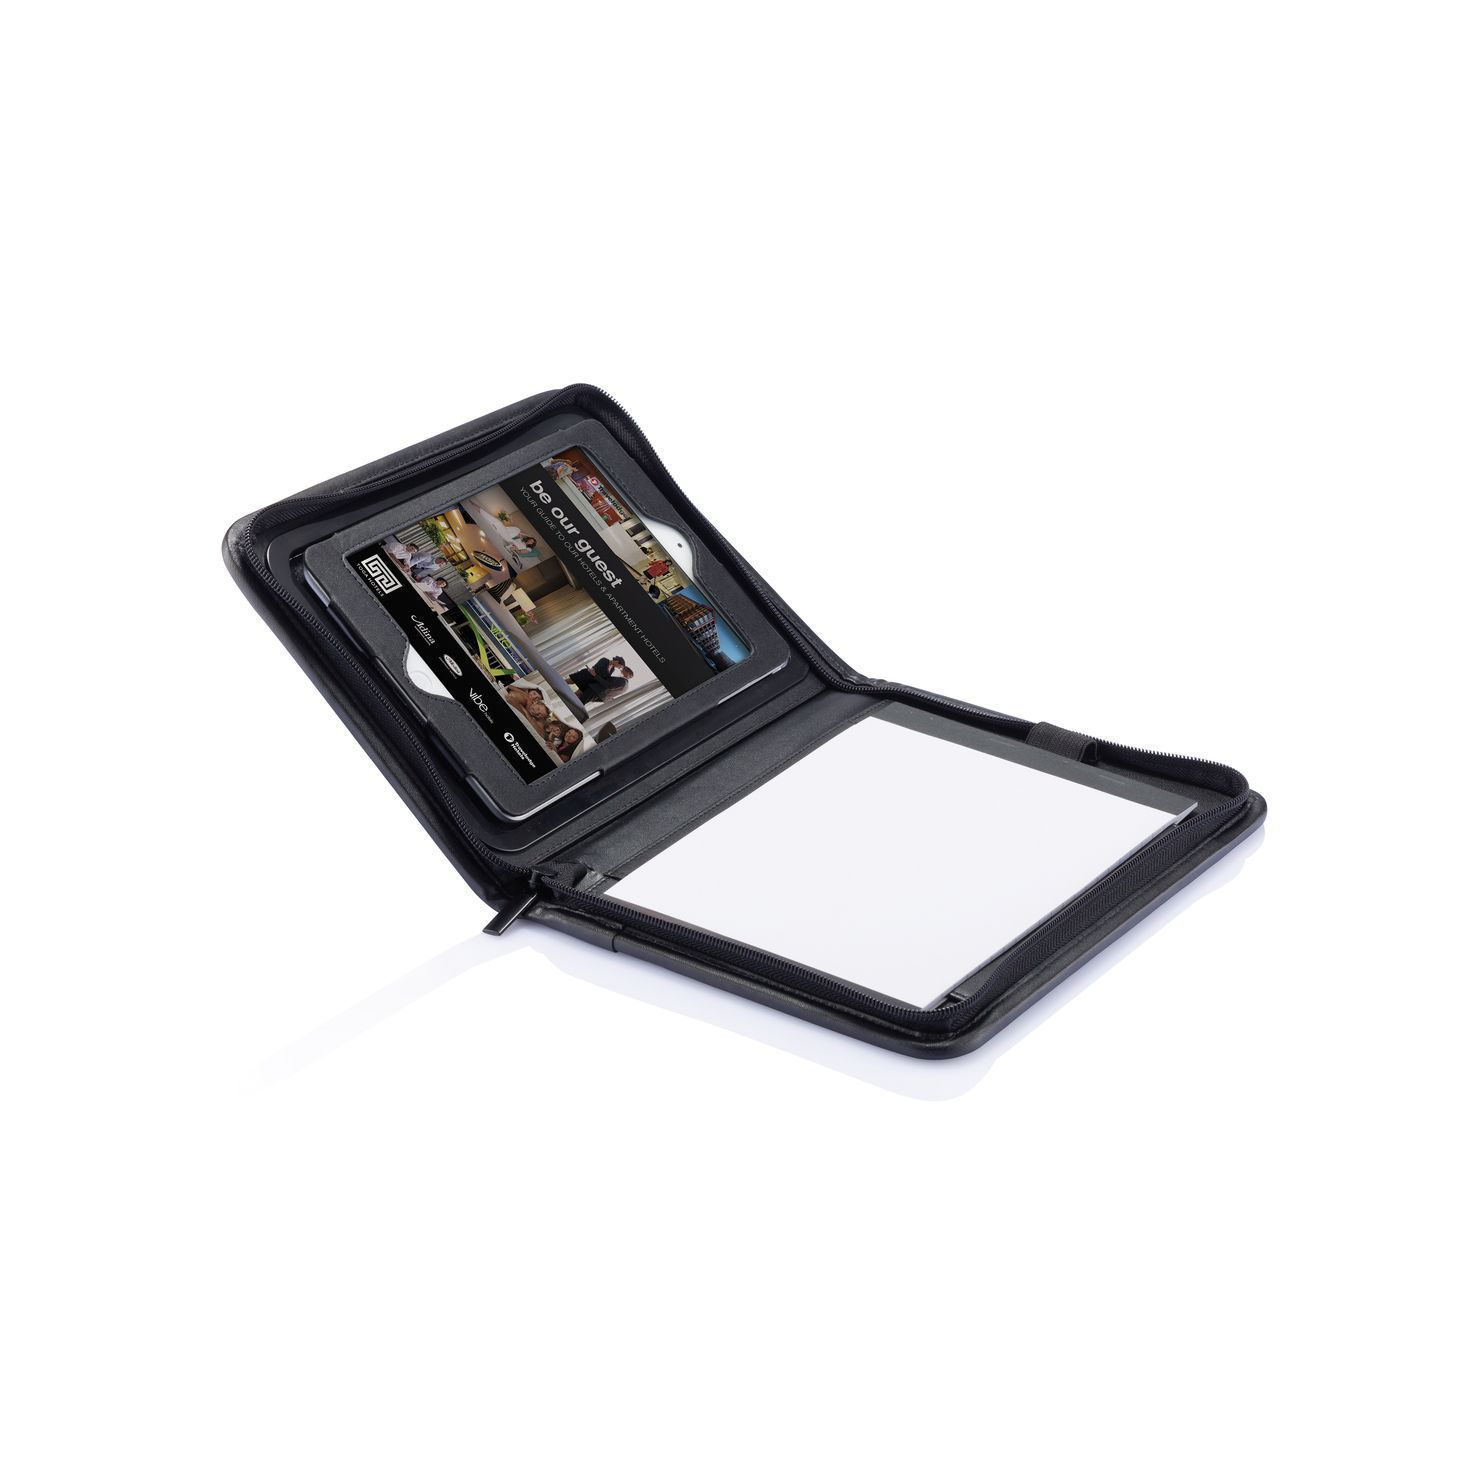 Zwarte iPad mini tablethouder | Roterend